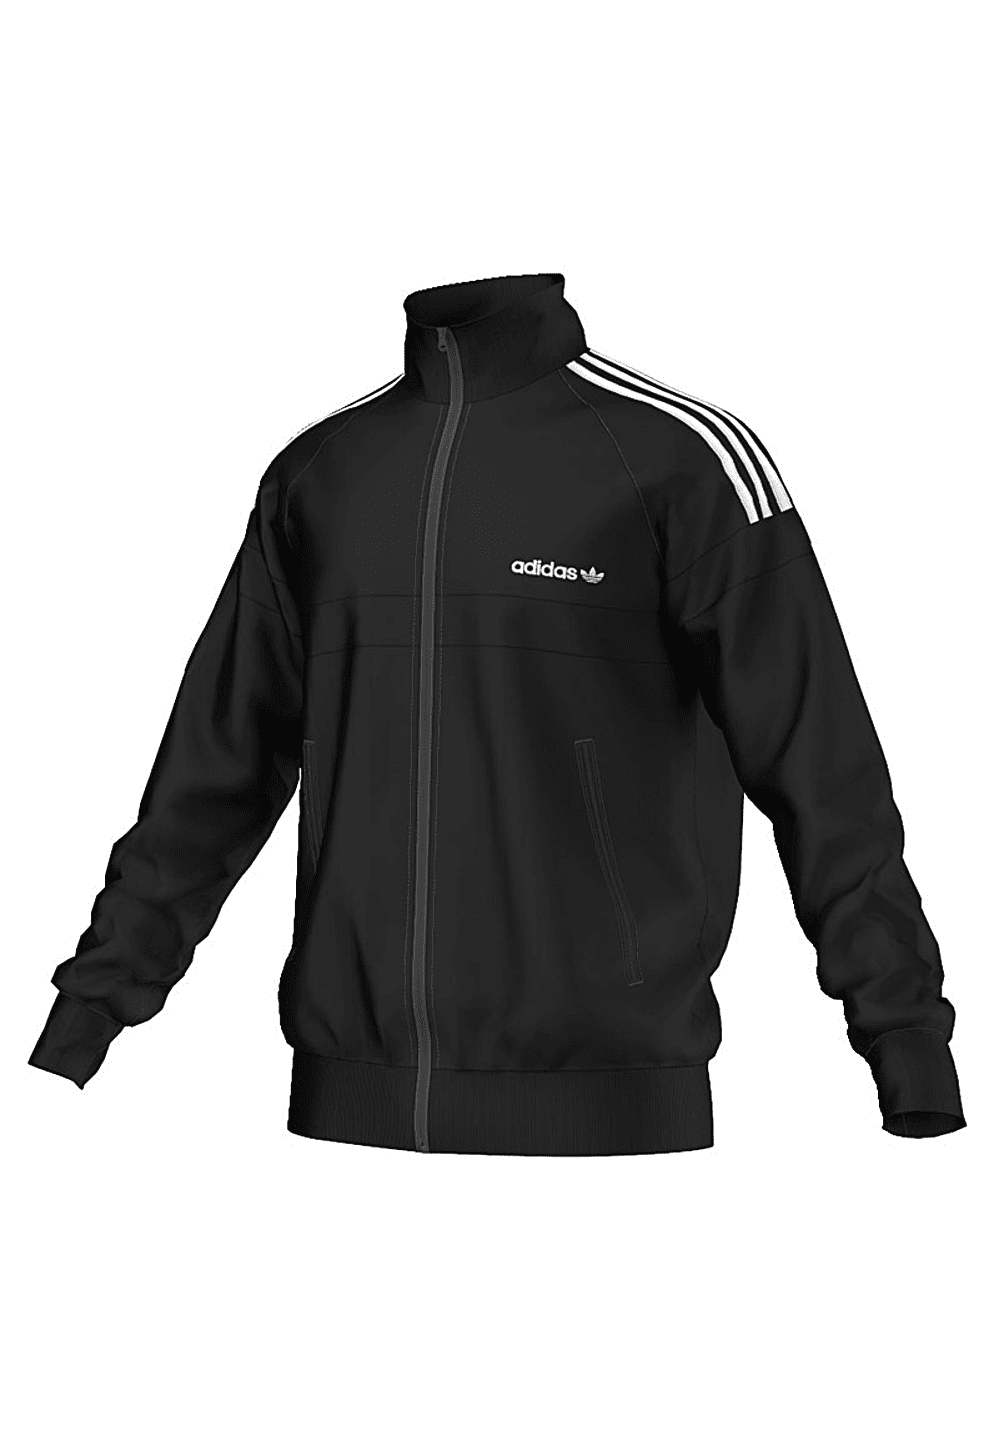 adidas itasca tt sweatjacke f r herren schwarz. Black Bedroom Furniture Sets. Home Design Ideas